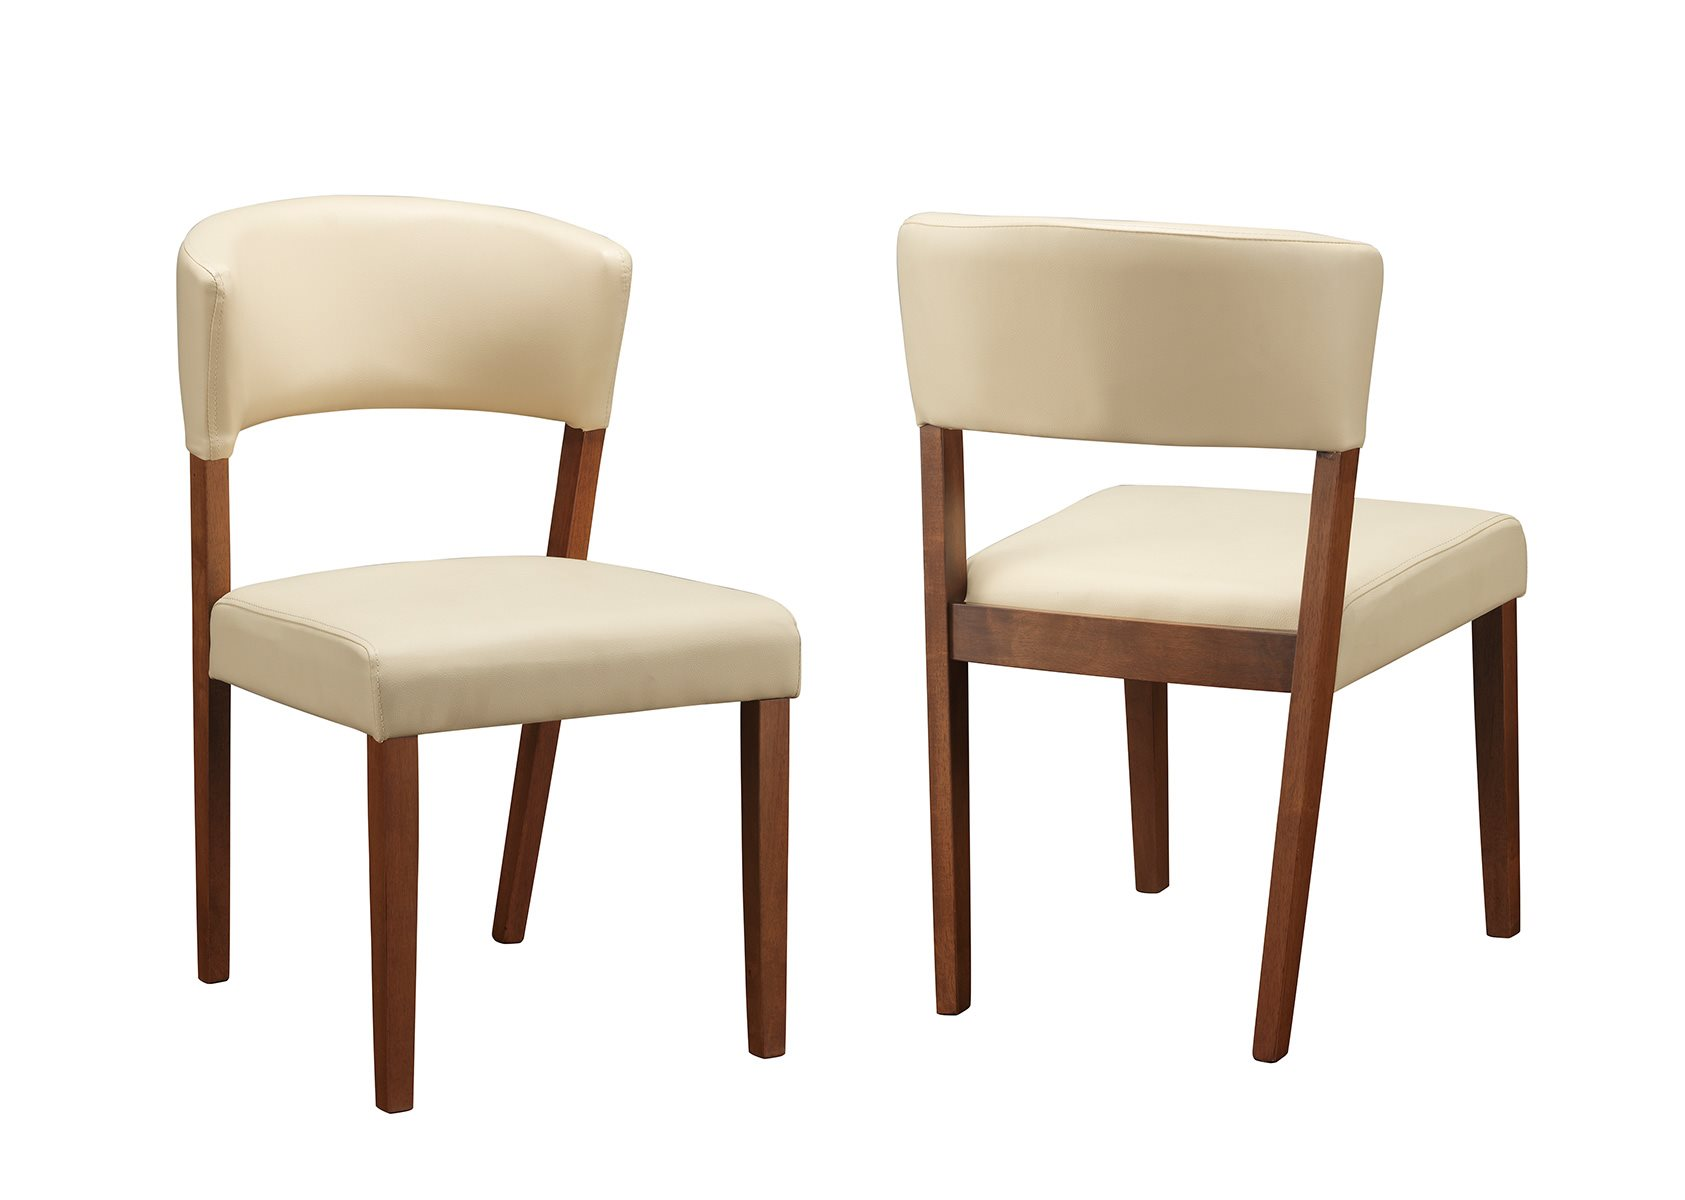 Coaster home 122182 paxton 12218 cream upholstered dining for Cream upholstered dining chairs